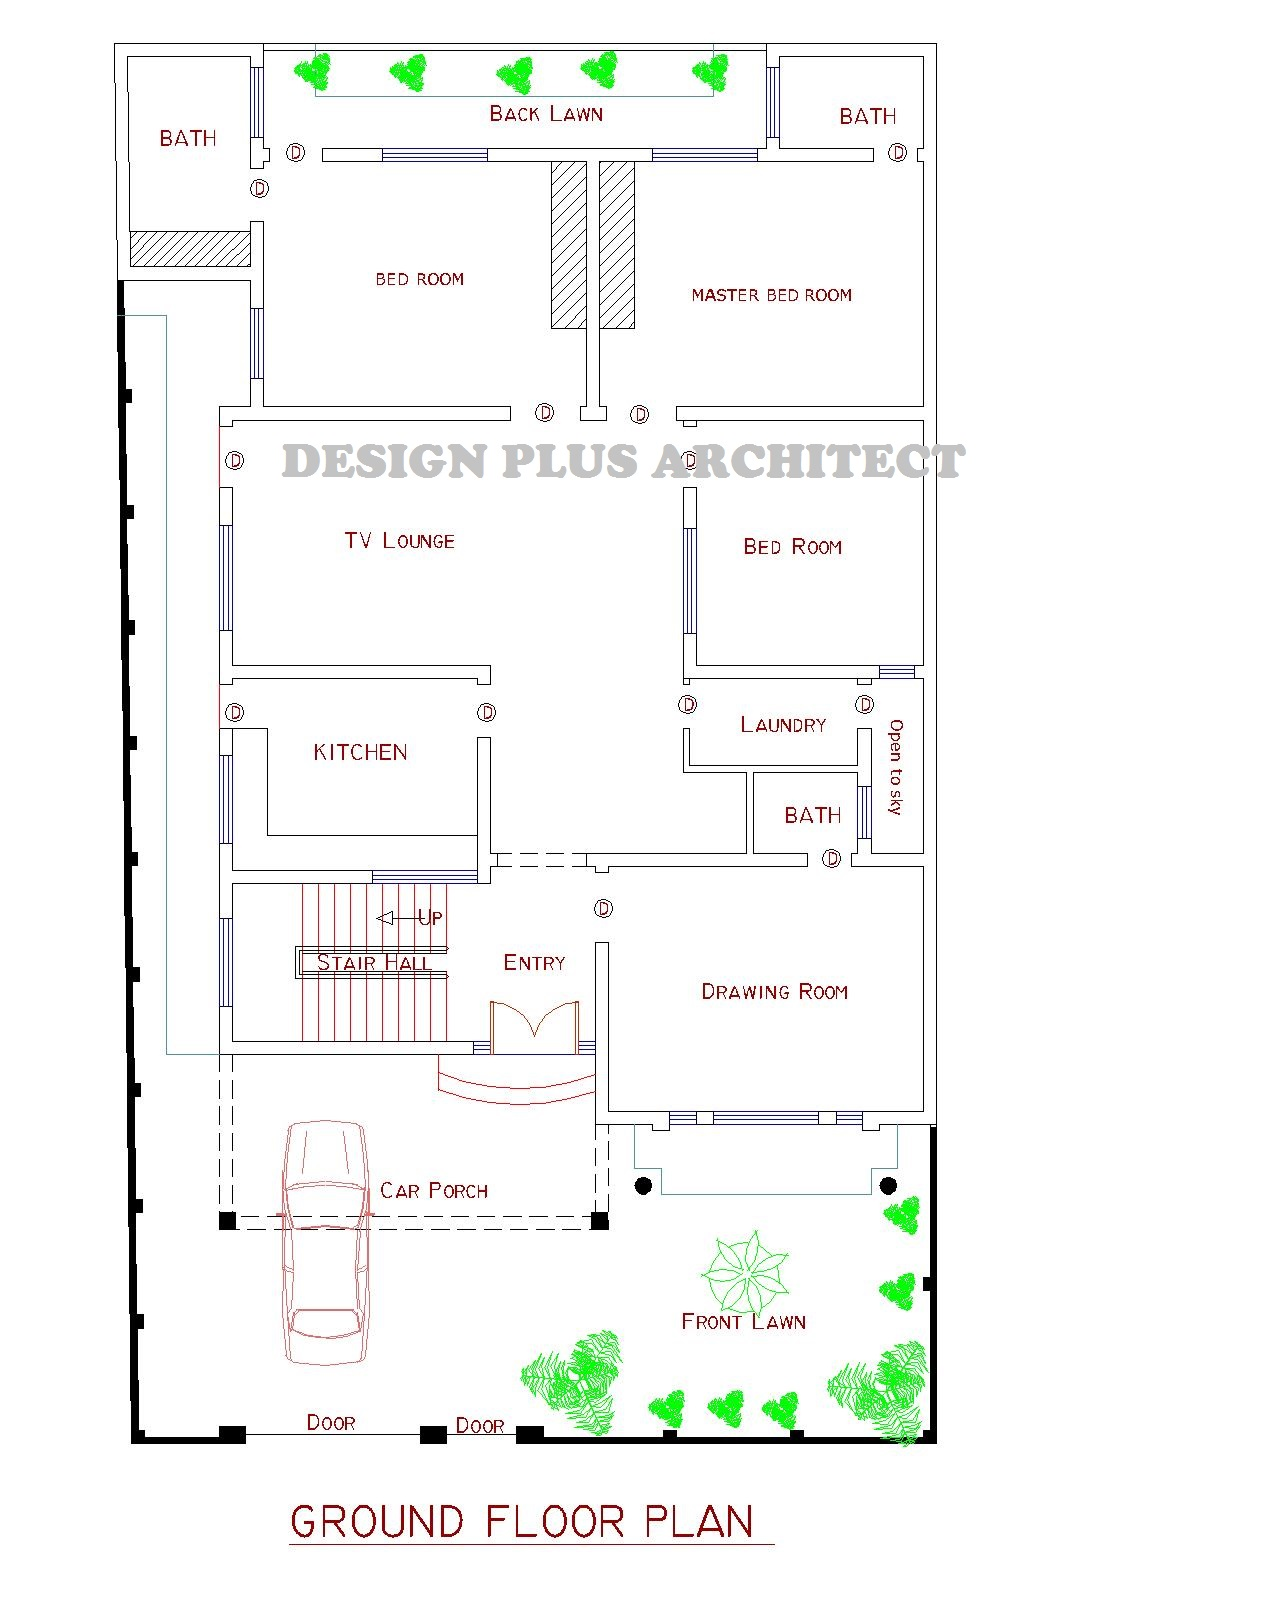 Home plans in pakistan home decor architect designer for Home garden design in pakistan